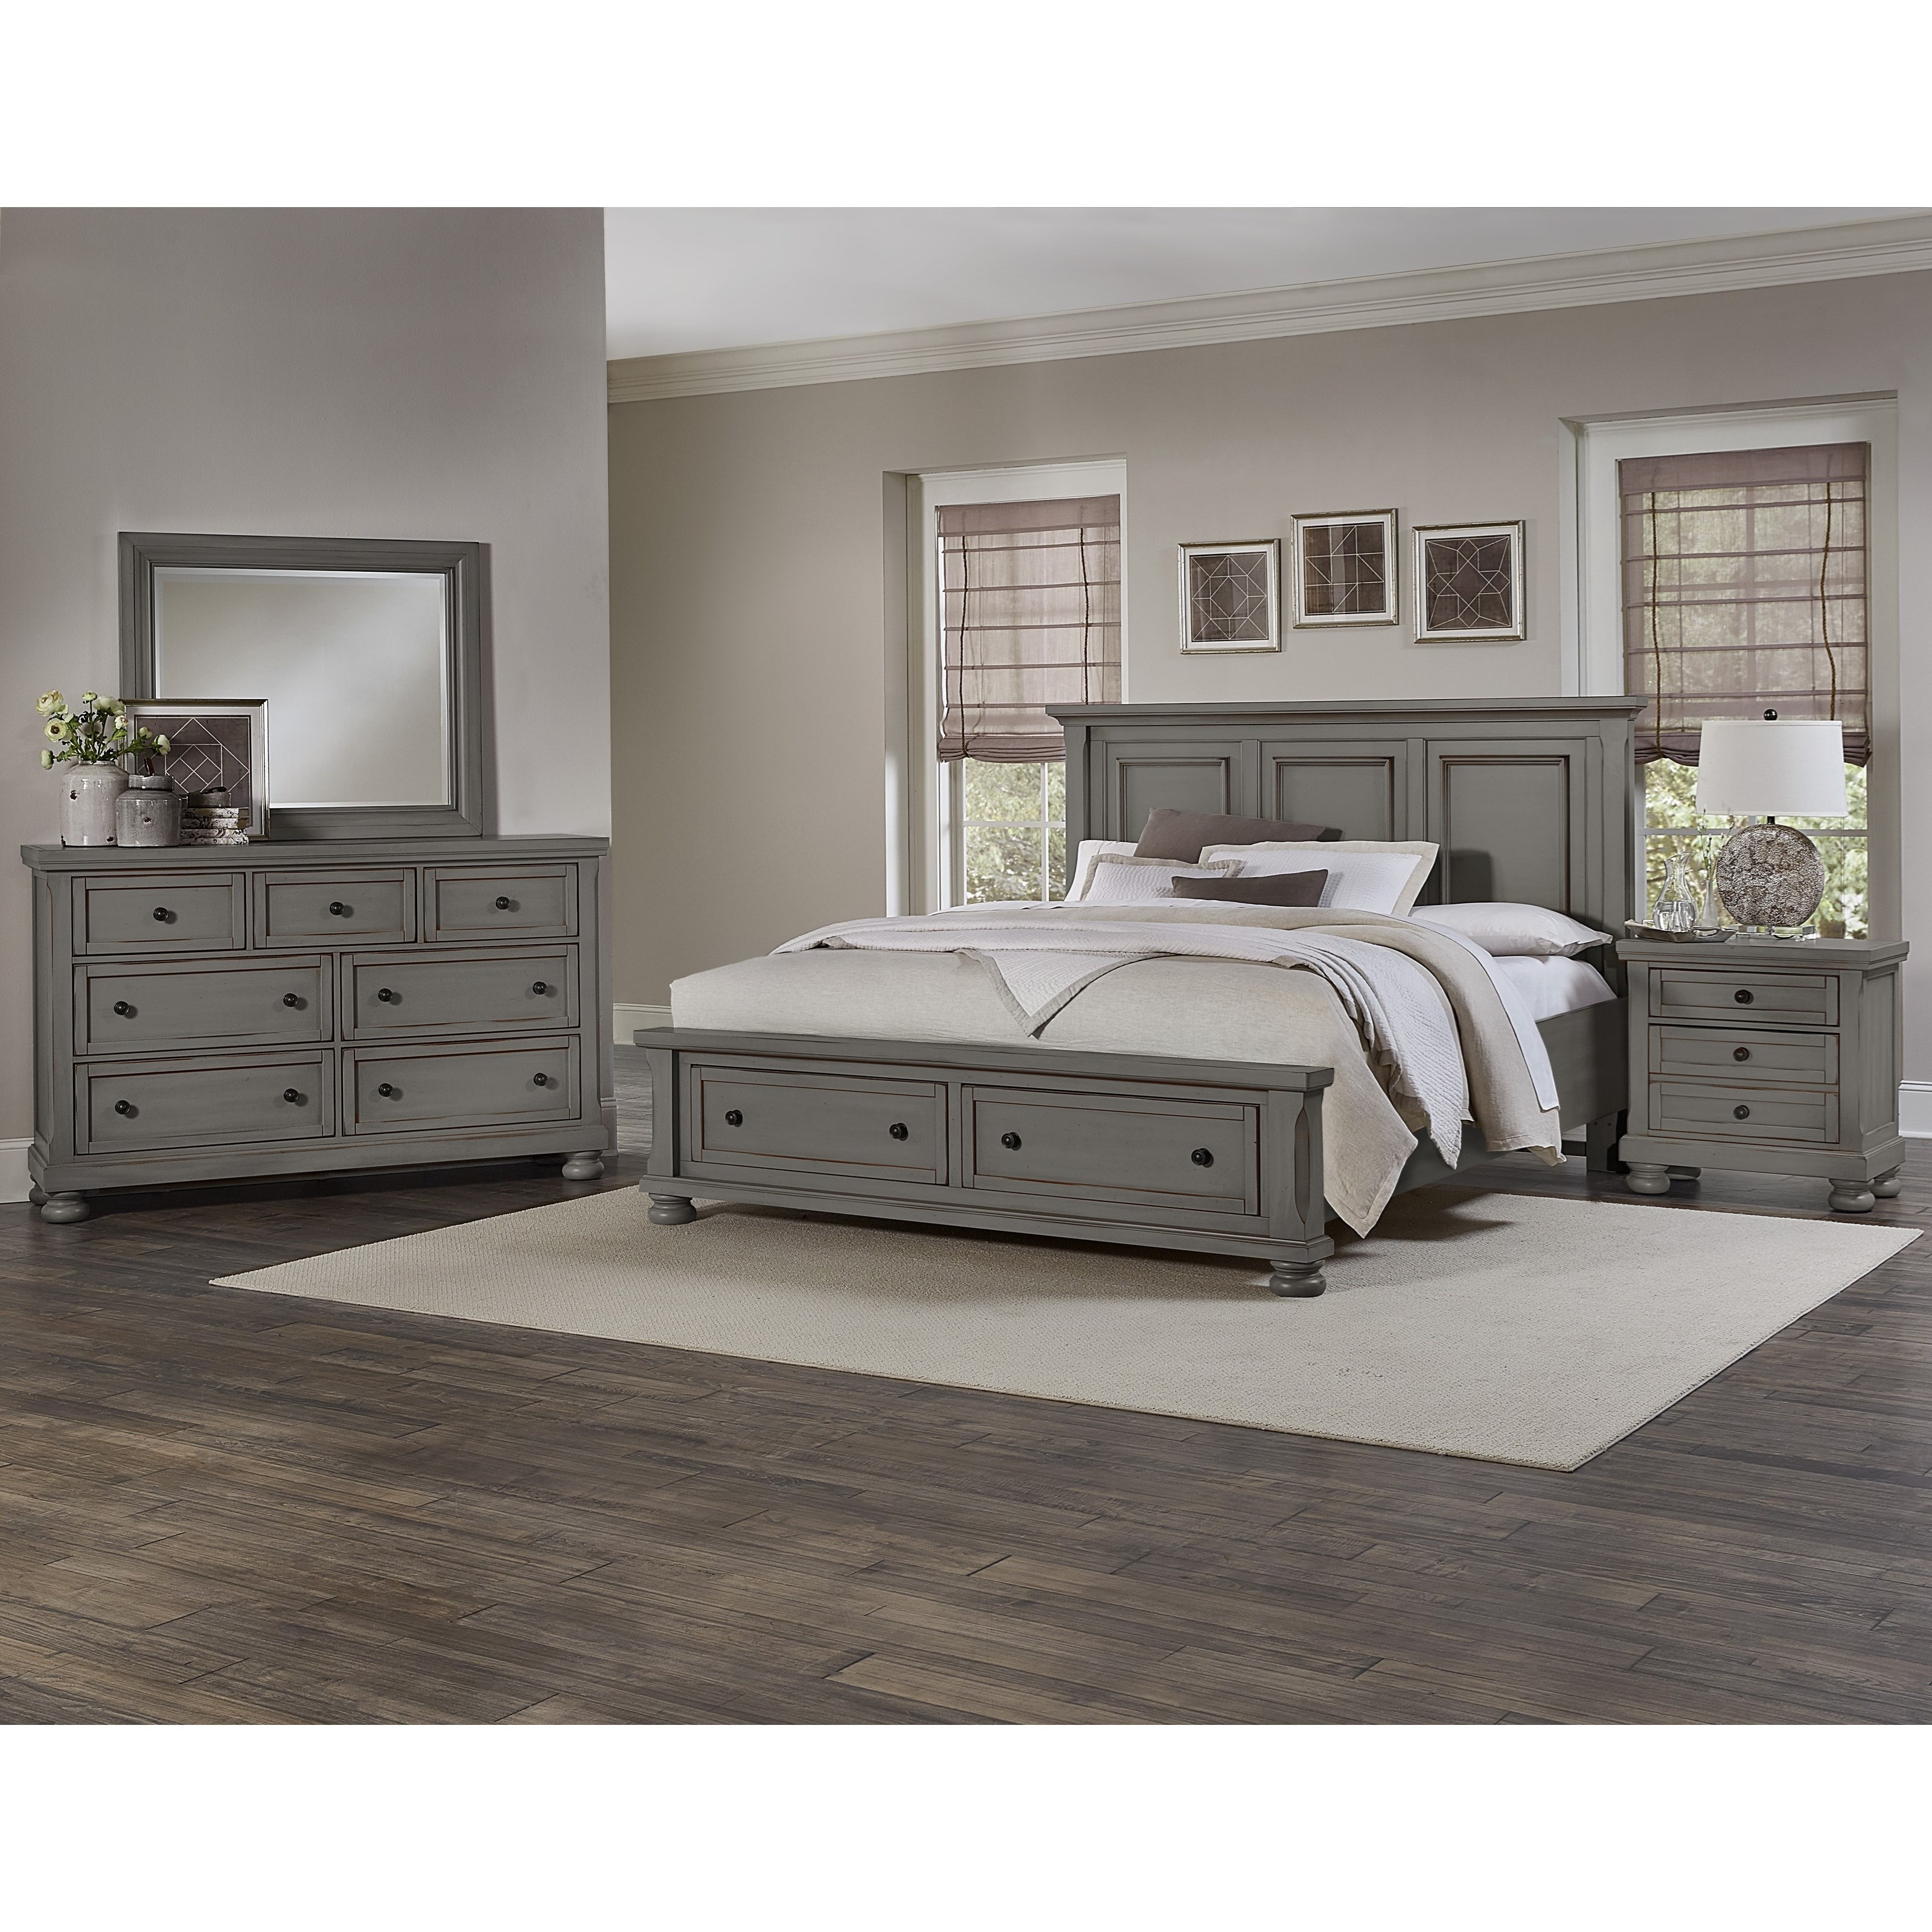 Vaughan bassett reflections king bedroom group olinde 39 s for Bedroom furniture groups